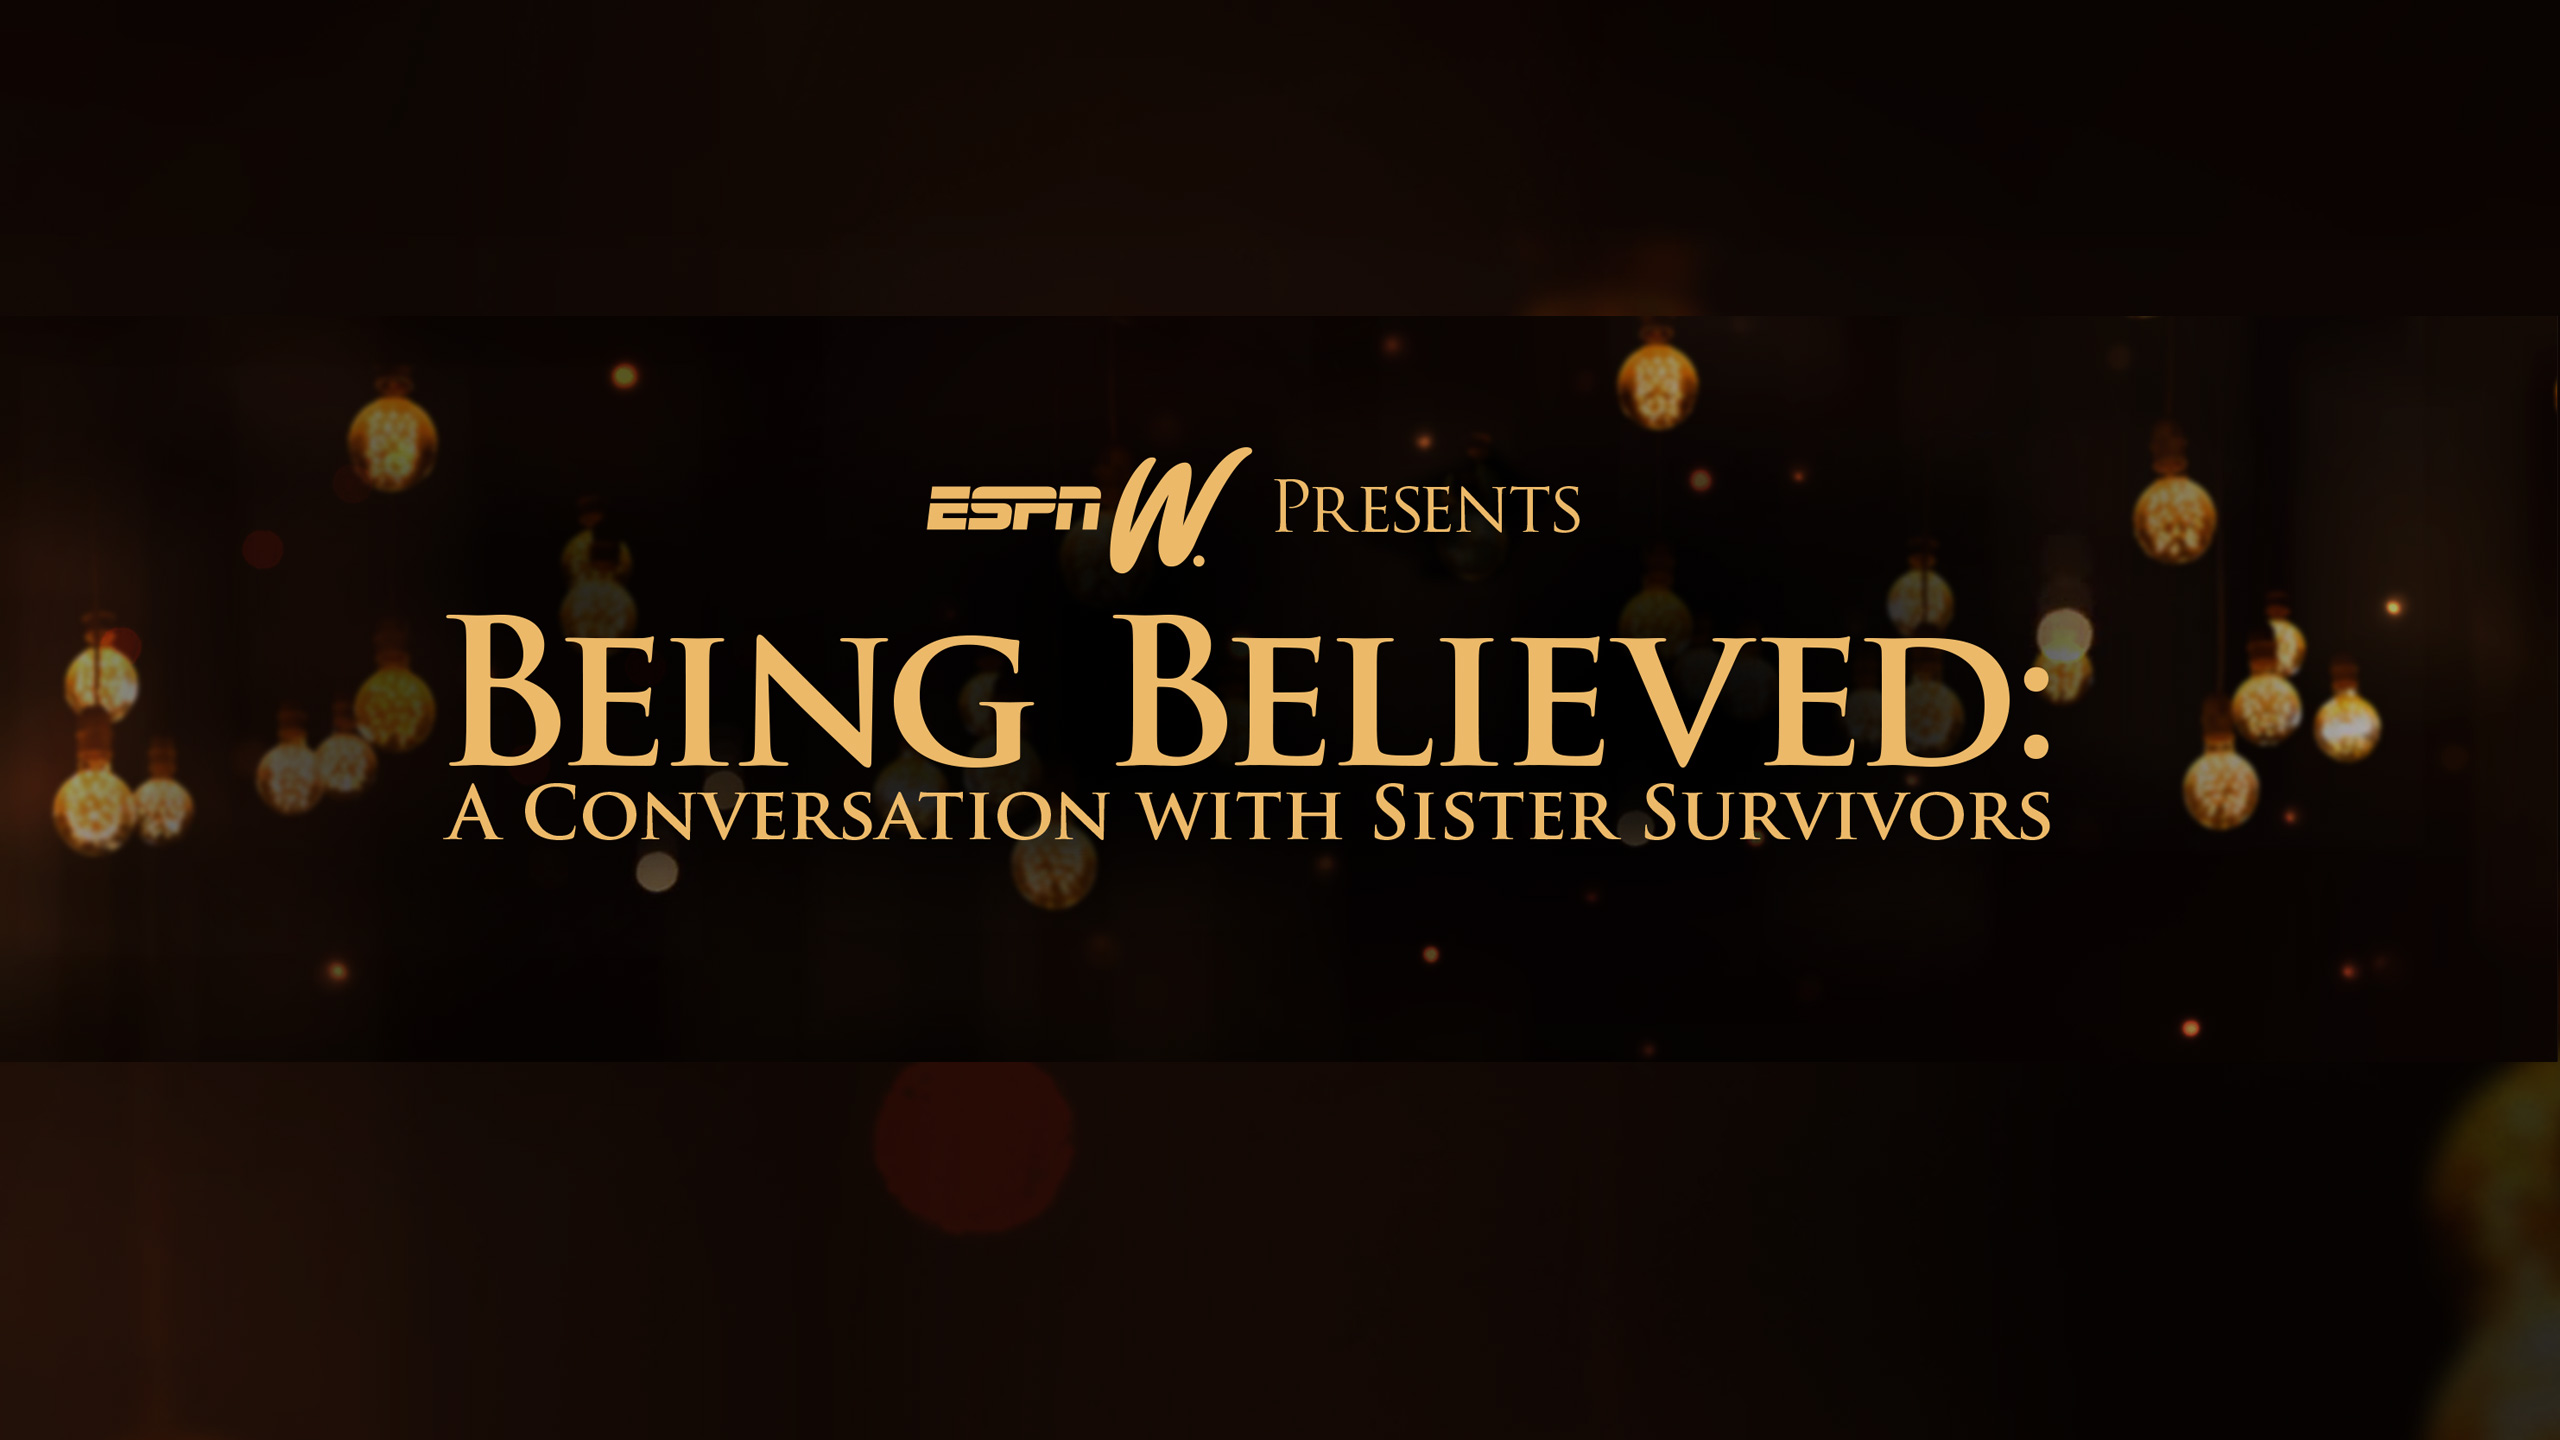 ESPNW Presents BEING BELIEVED: A Conversation With Sister Survivors